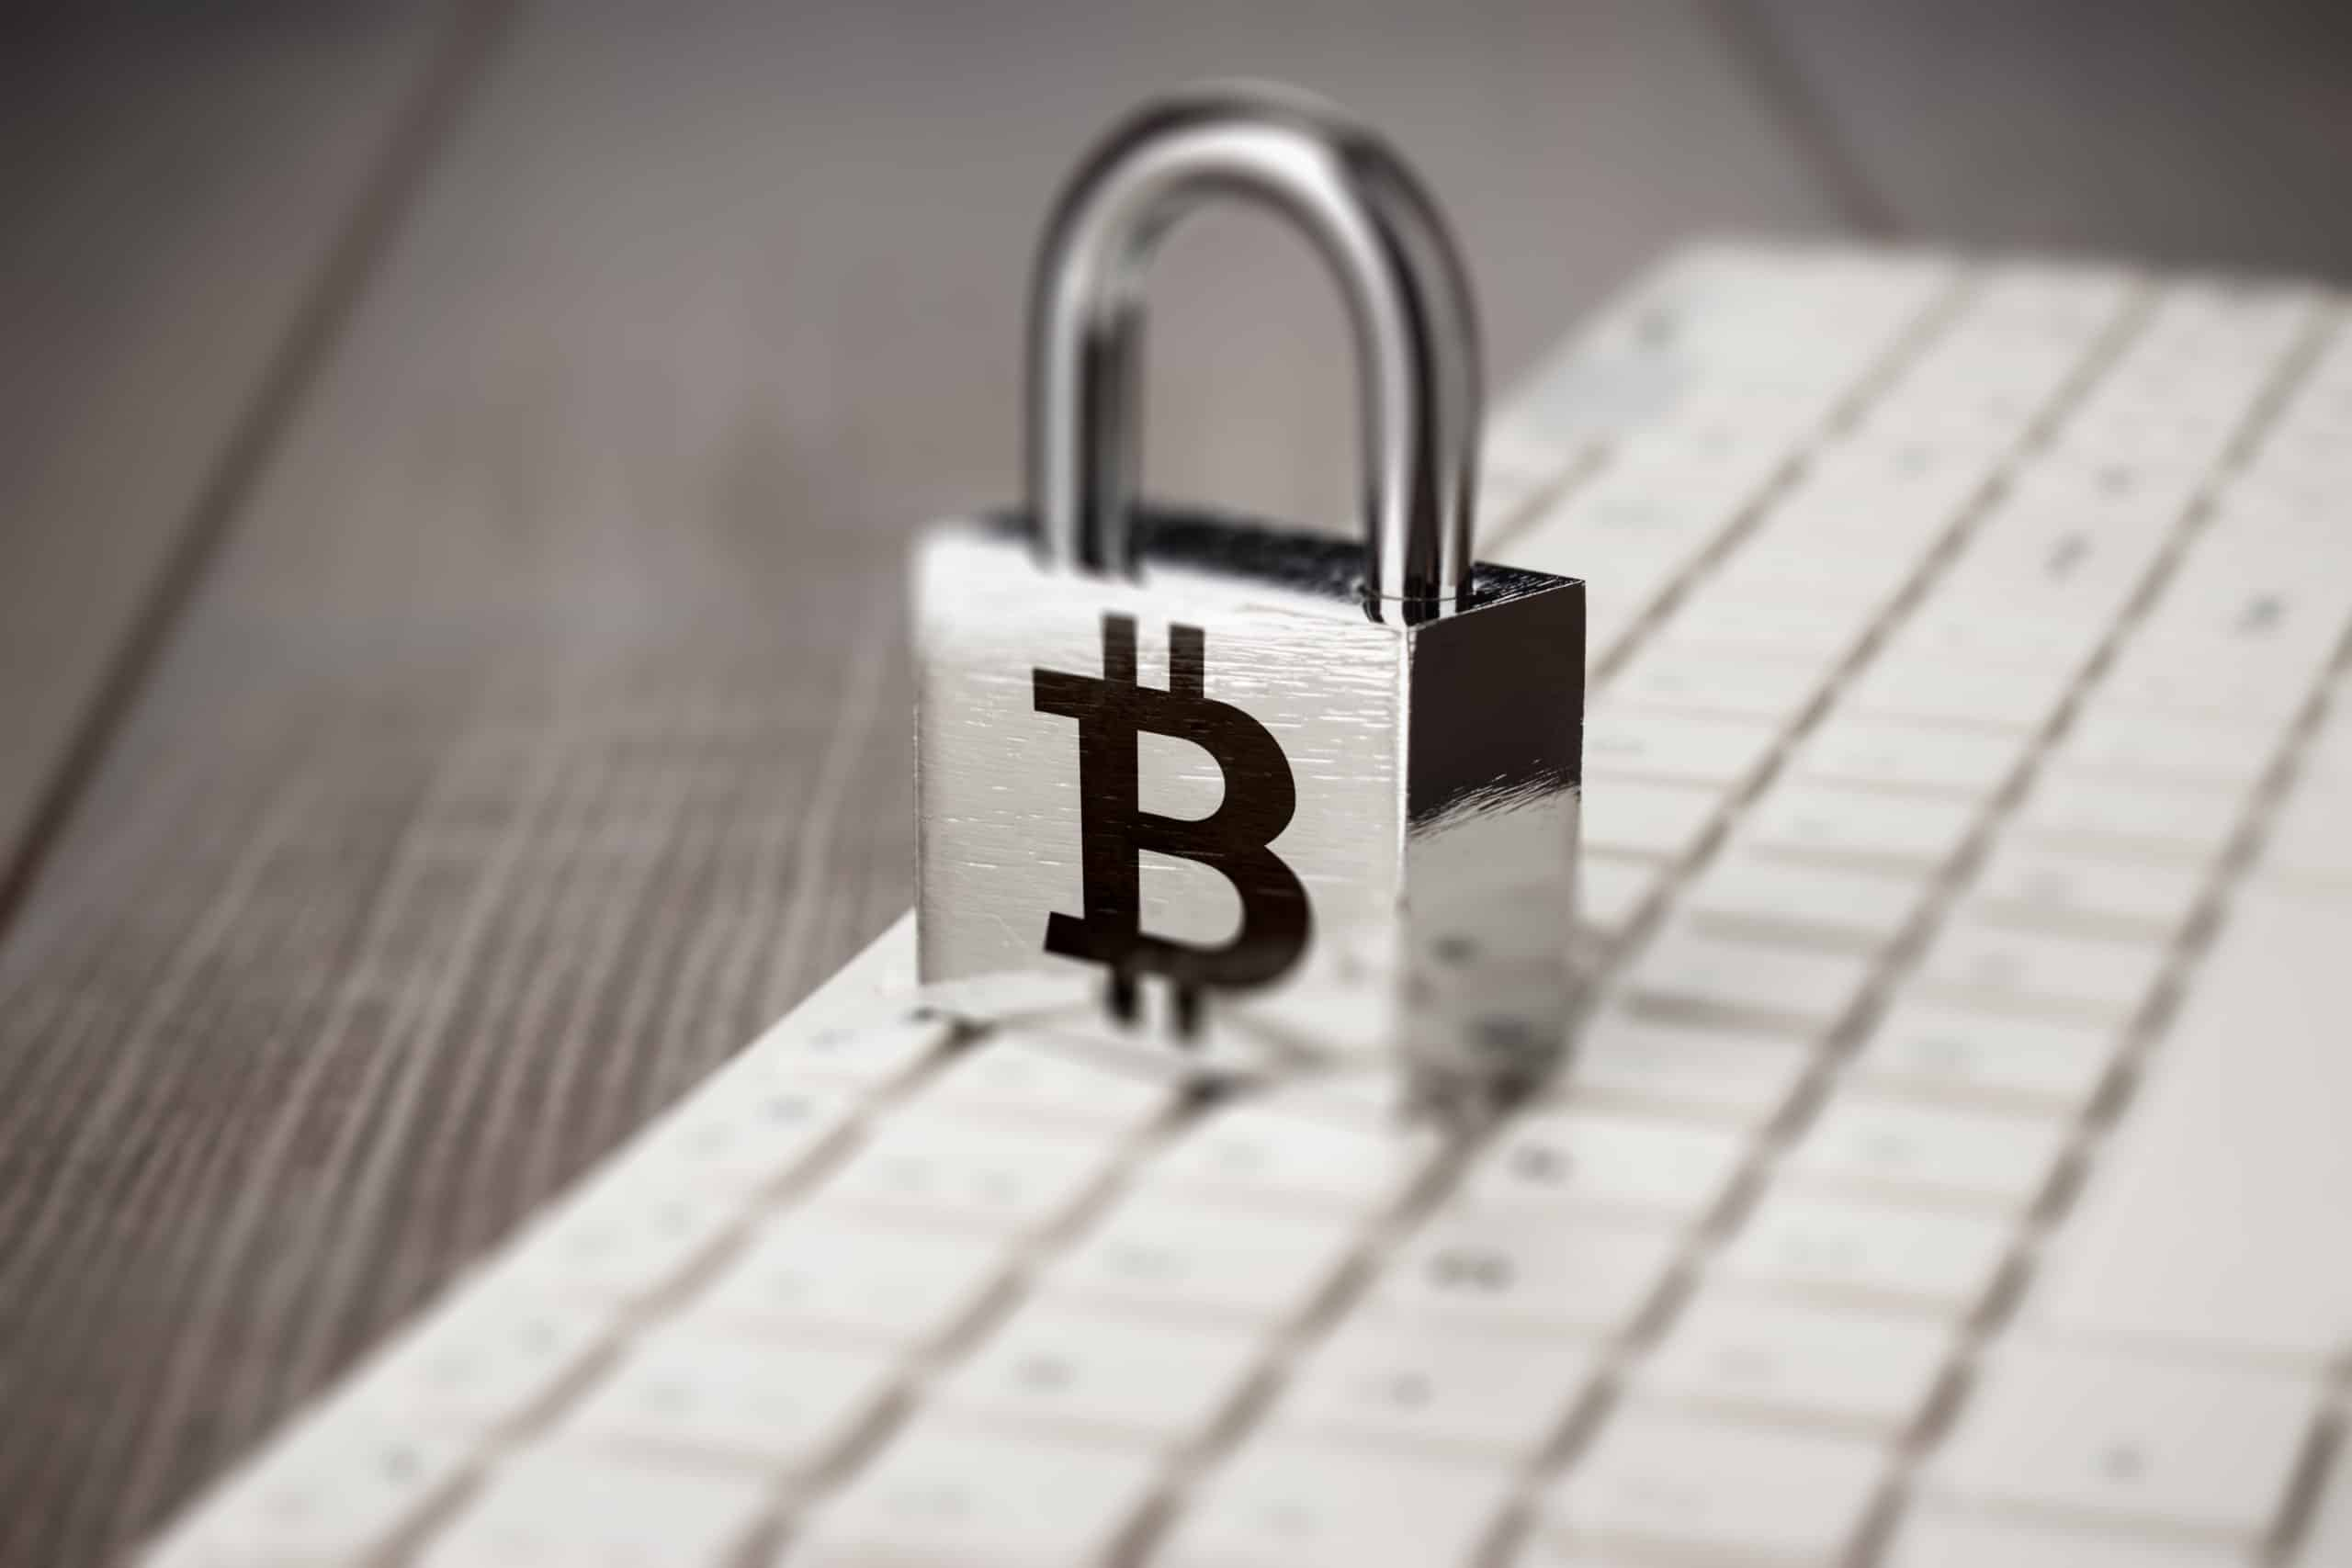 Padlock with bitcoin symbol over a keyboard, blockchain has cyperspace risks